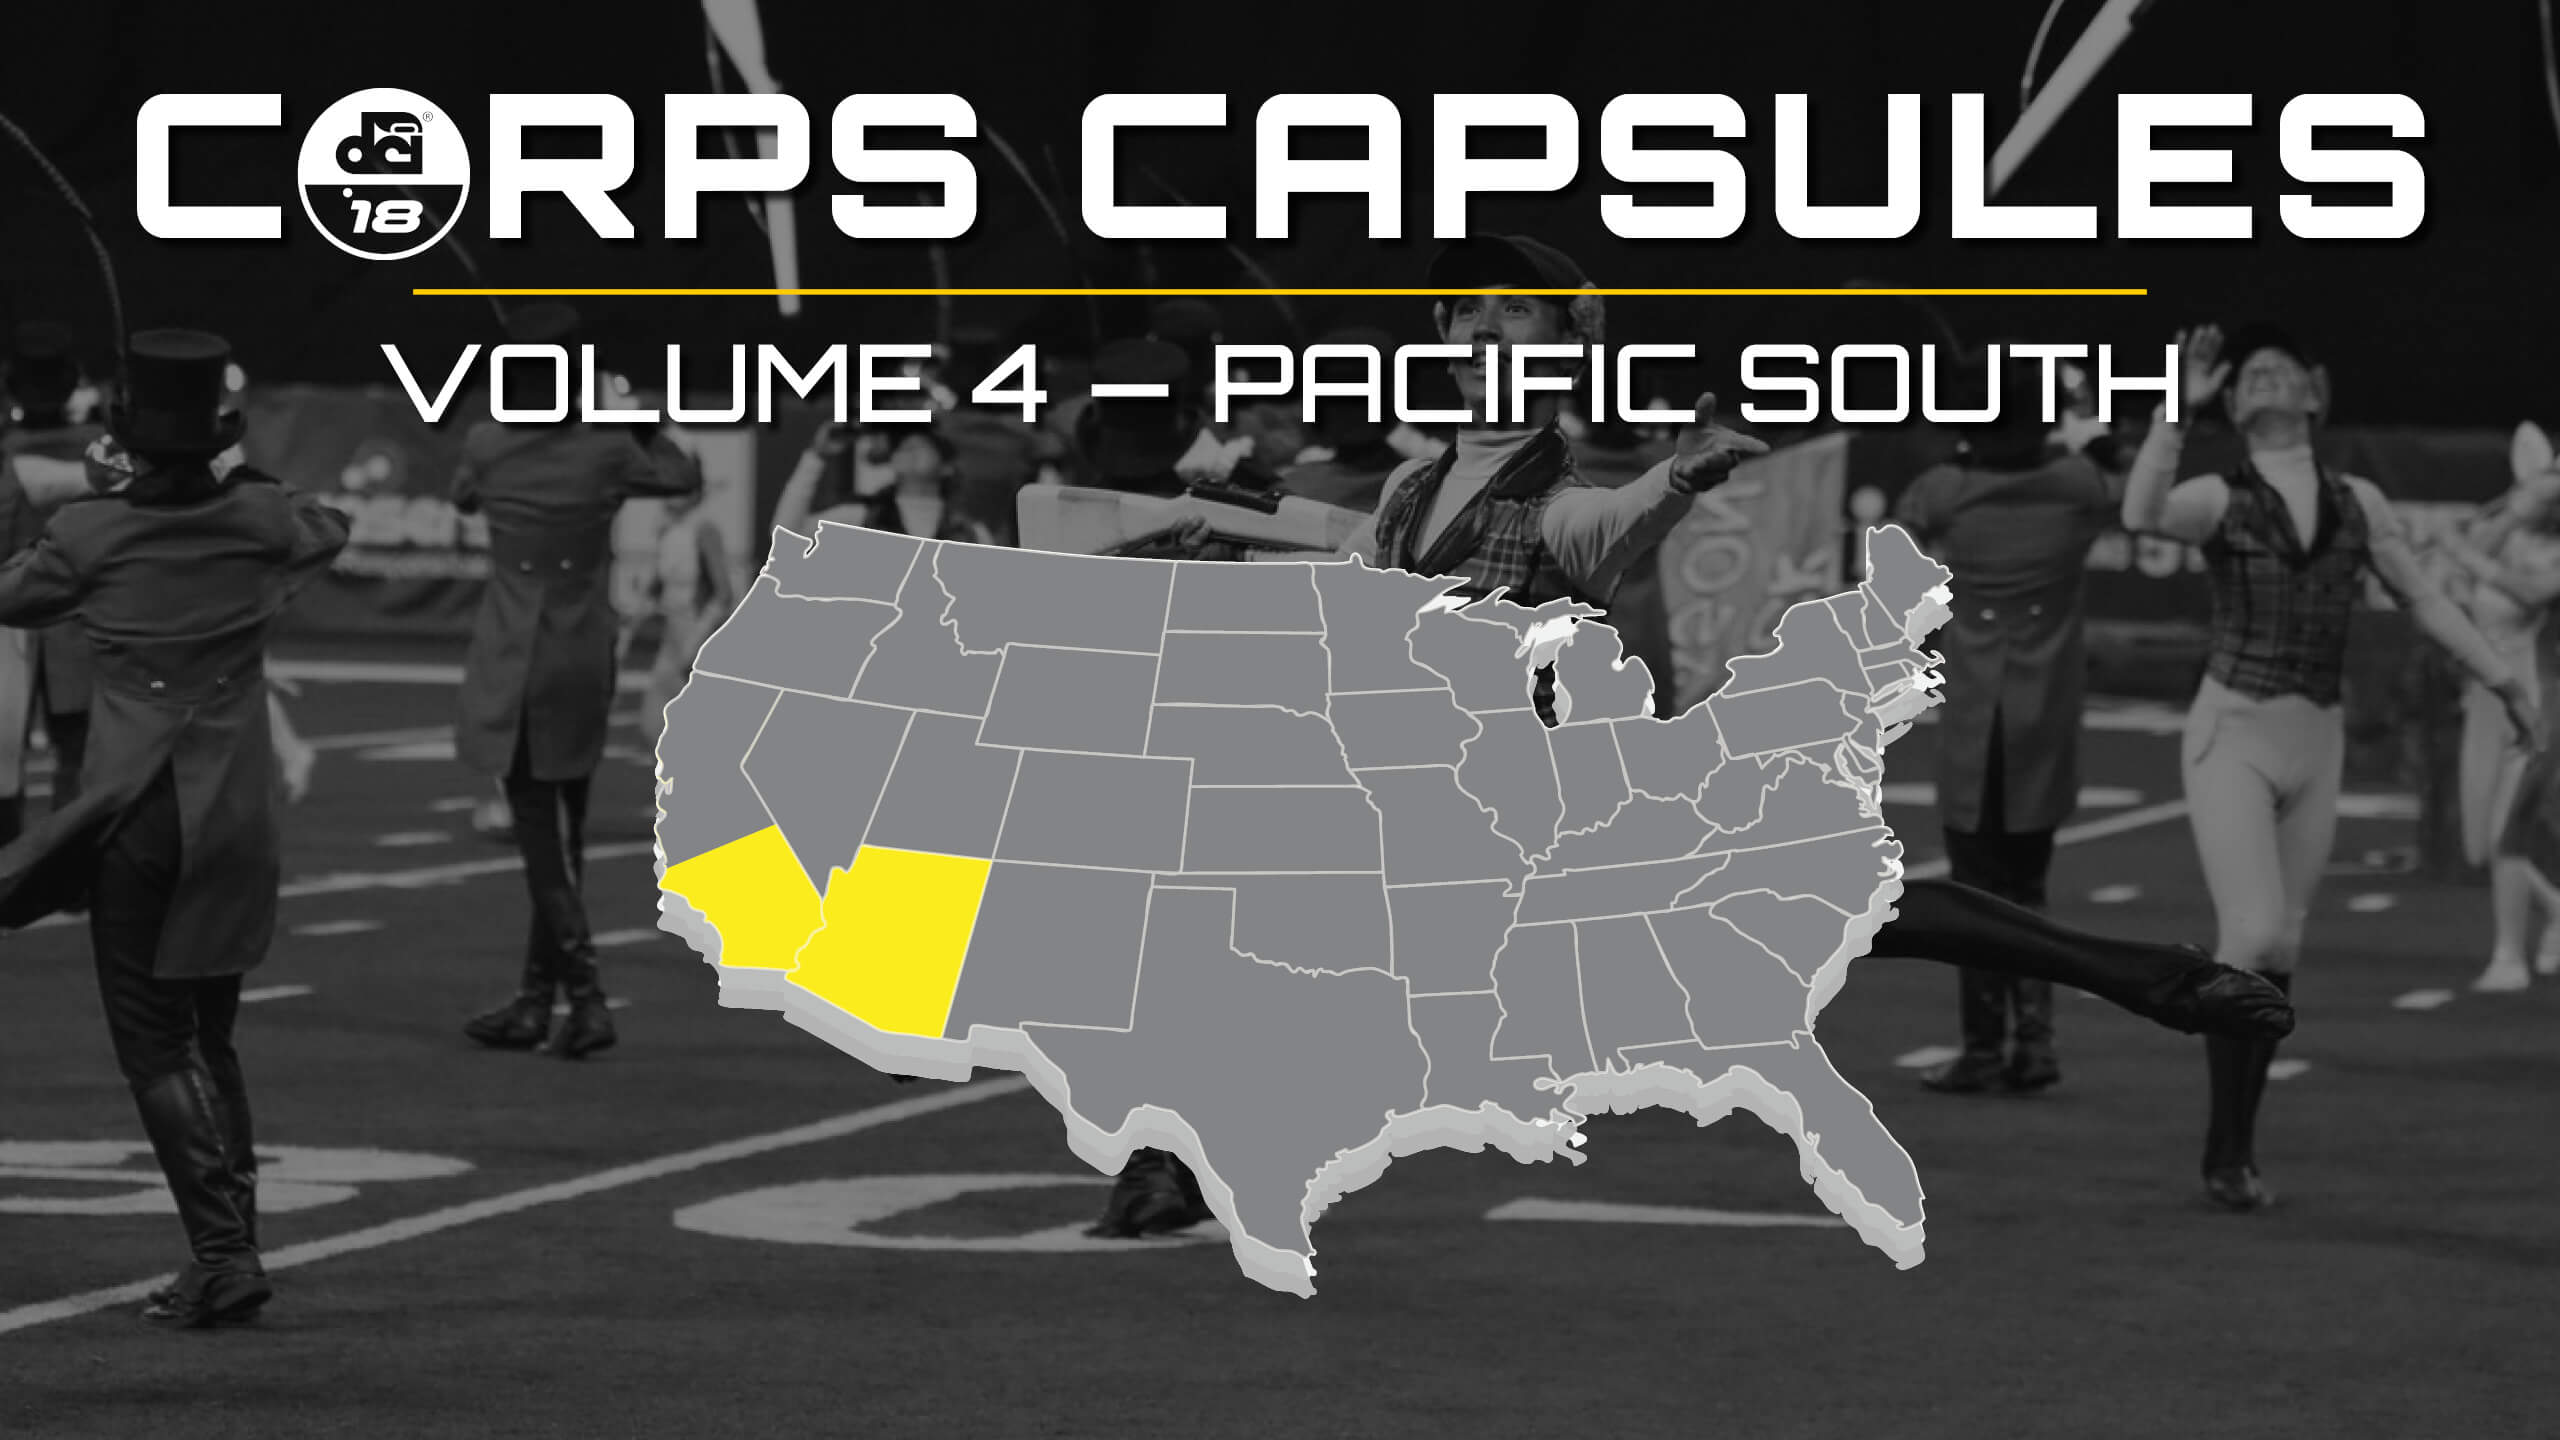 2018 DCI Corps Capsules — Volume 4: Pacific South